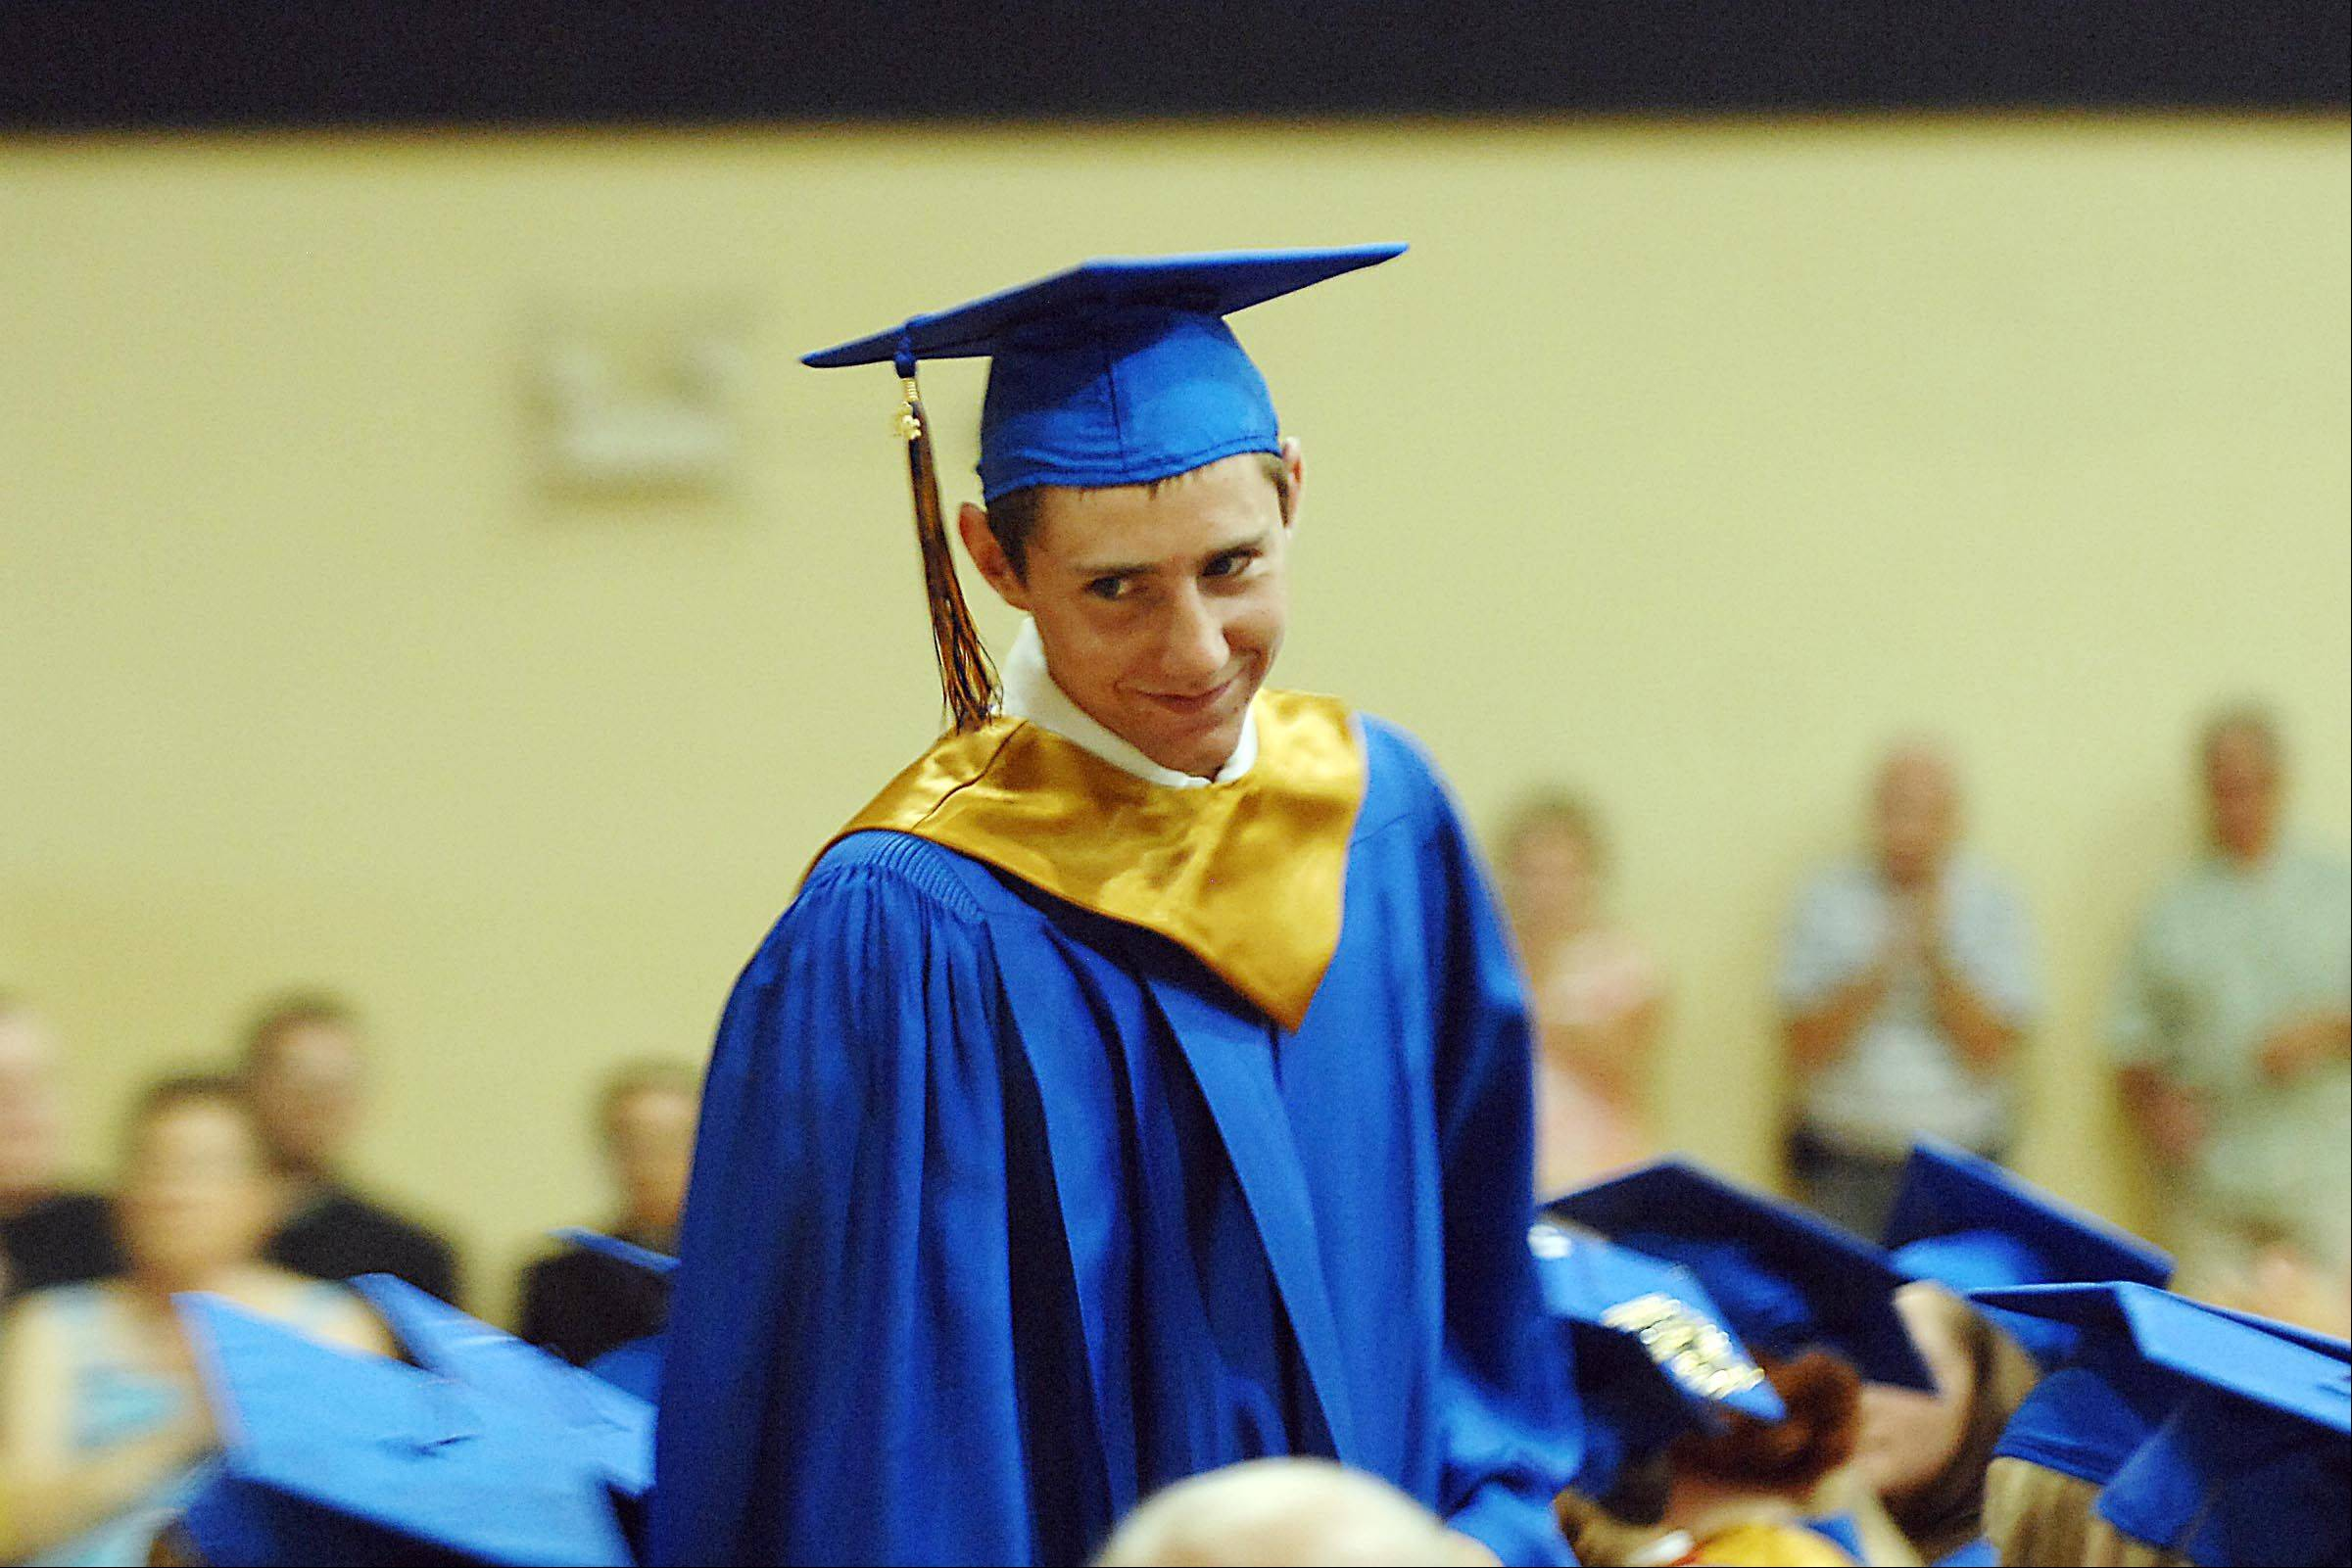 Salutatorian Kevin Bond smiles as he approaches the podium to make his address.